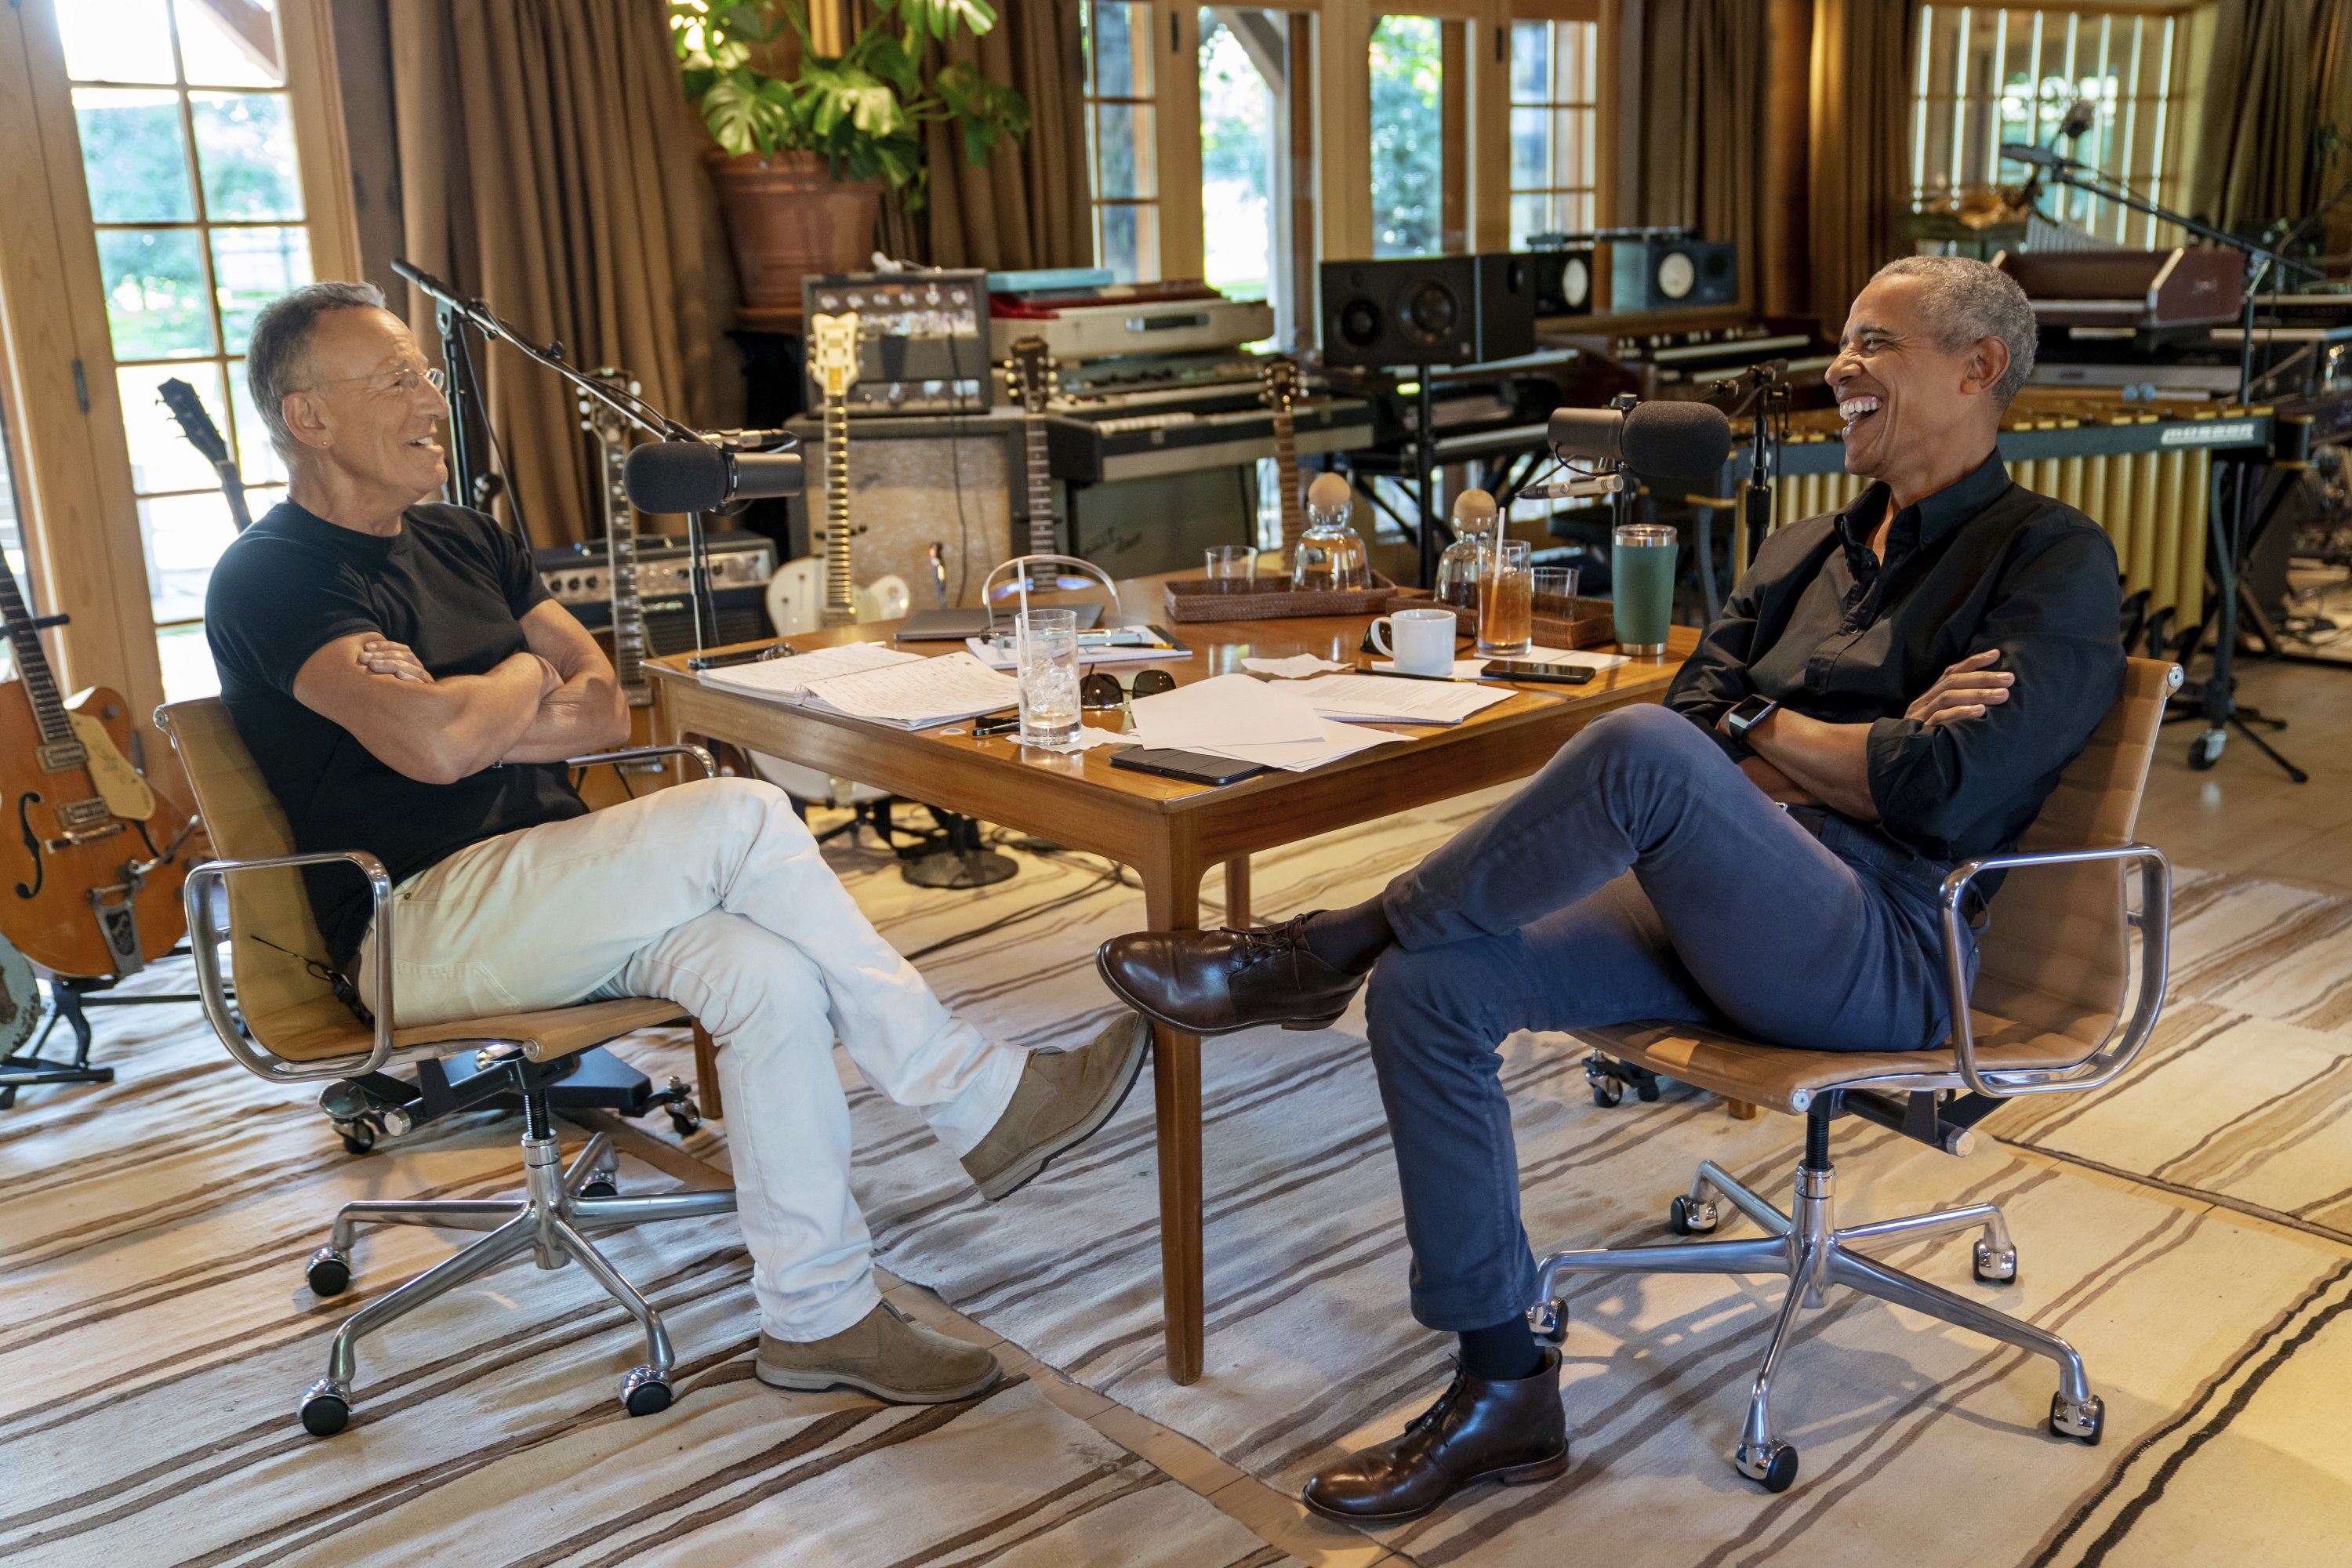 Podcast odd couple: Obama, Springsteen in Spotify series - Associated Press